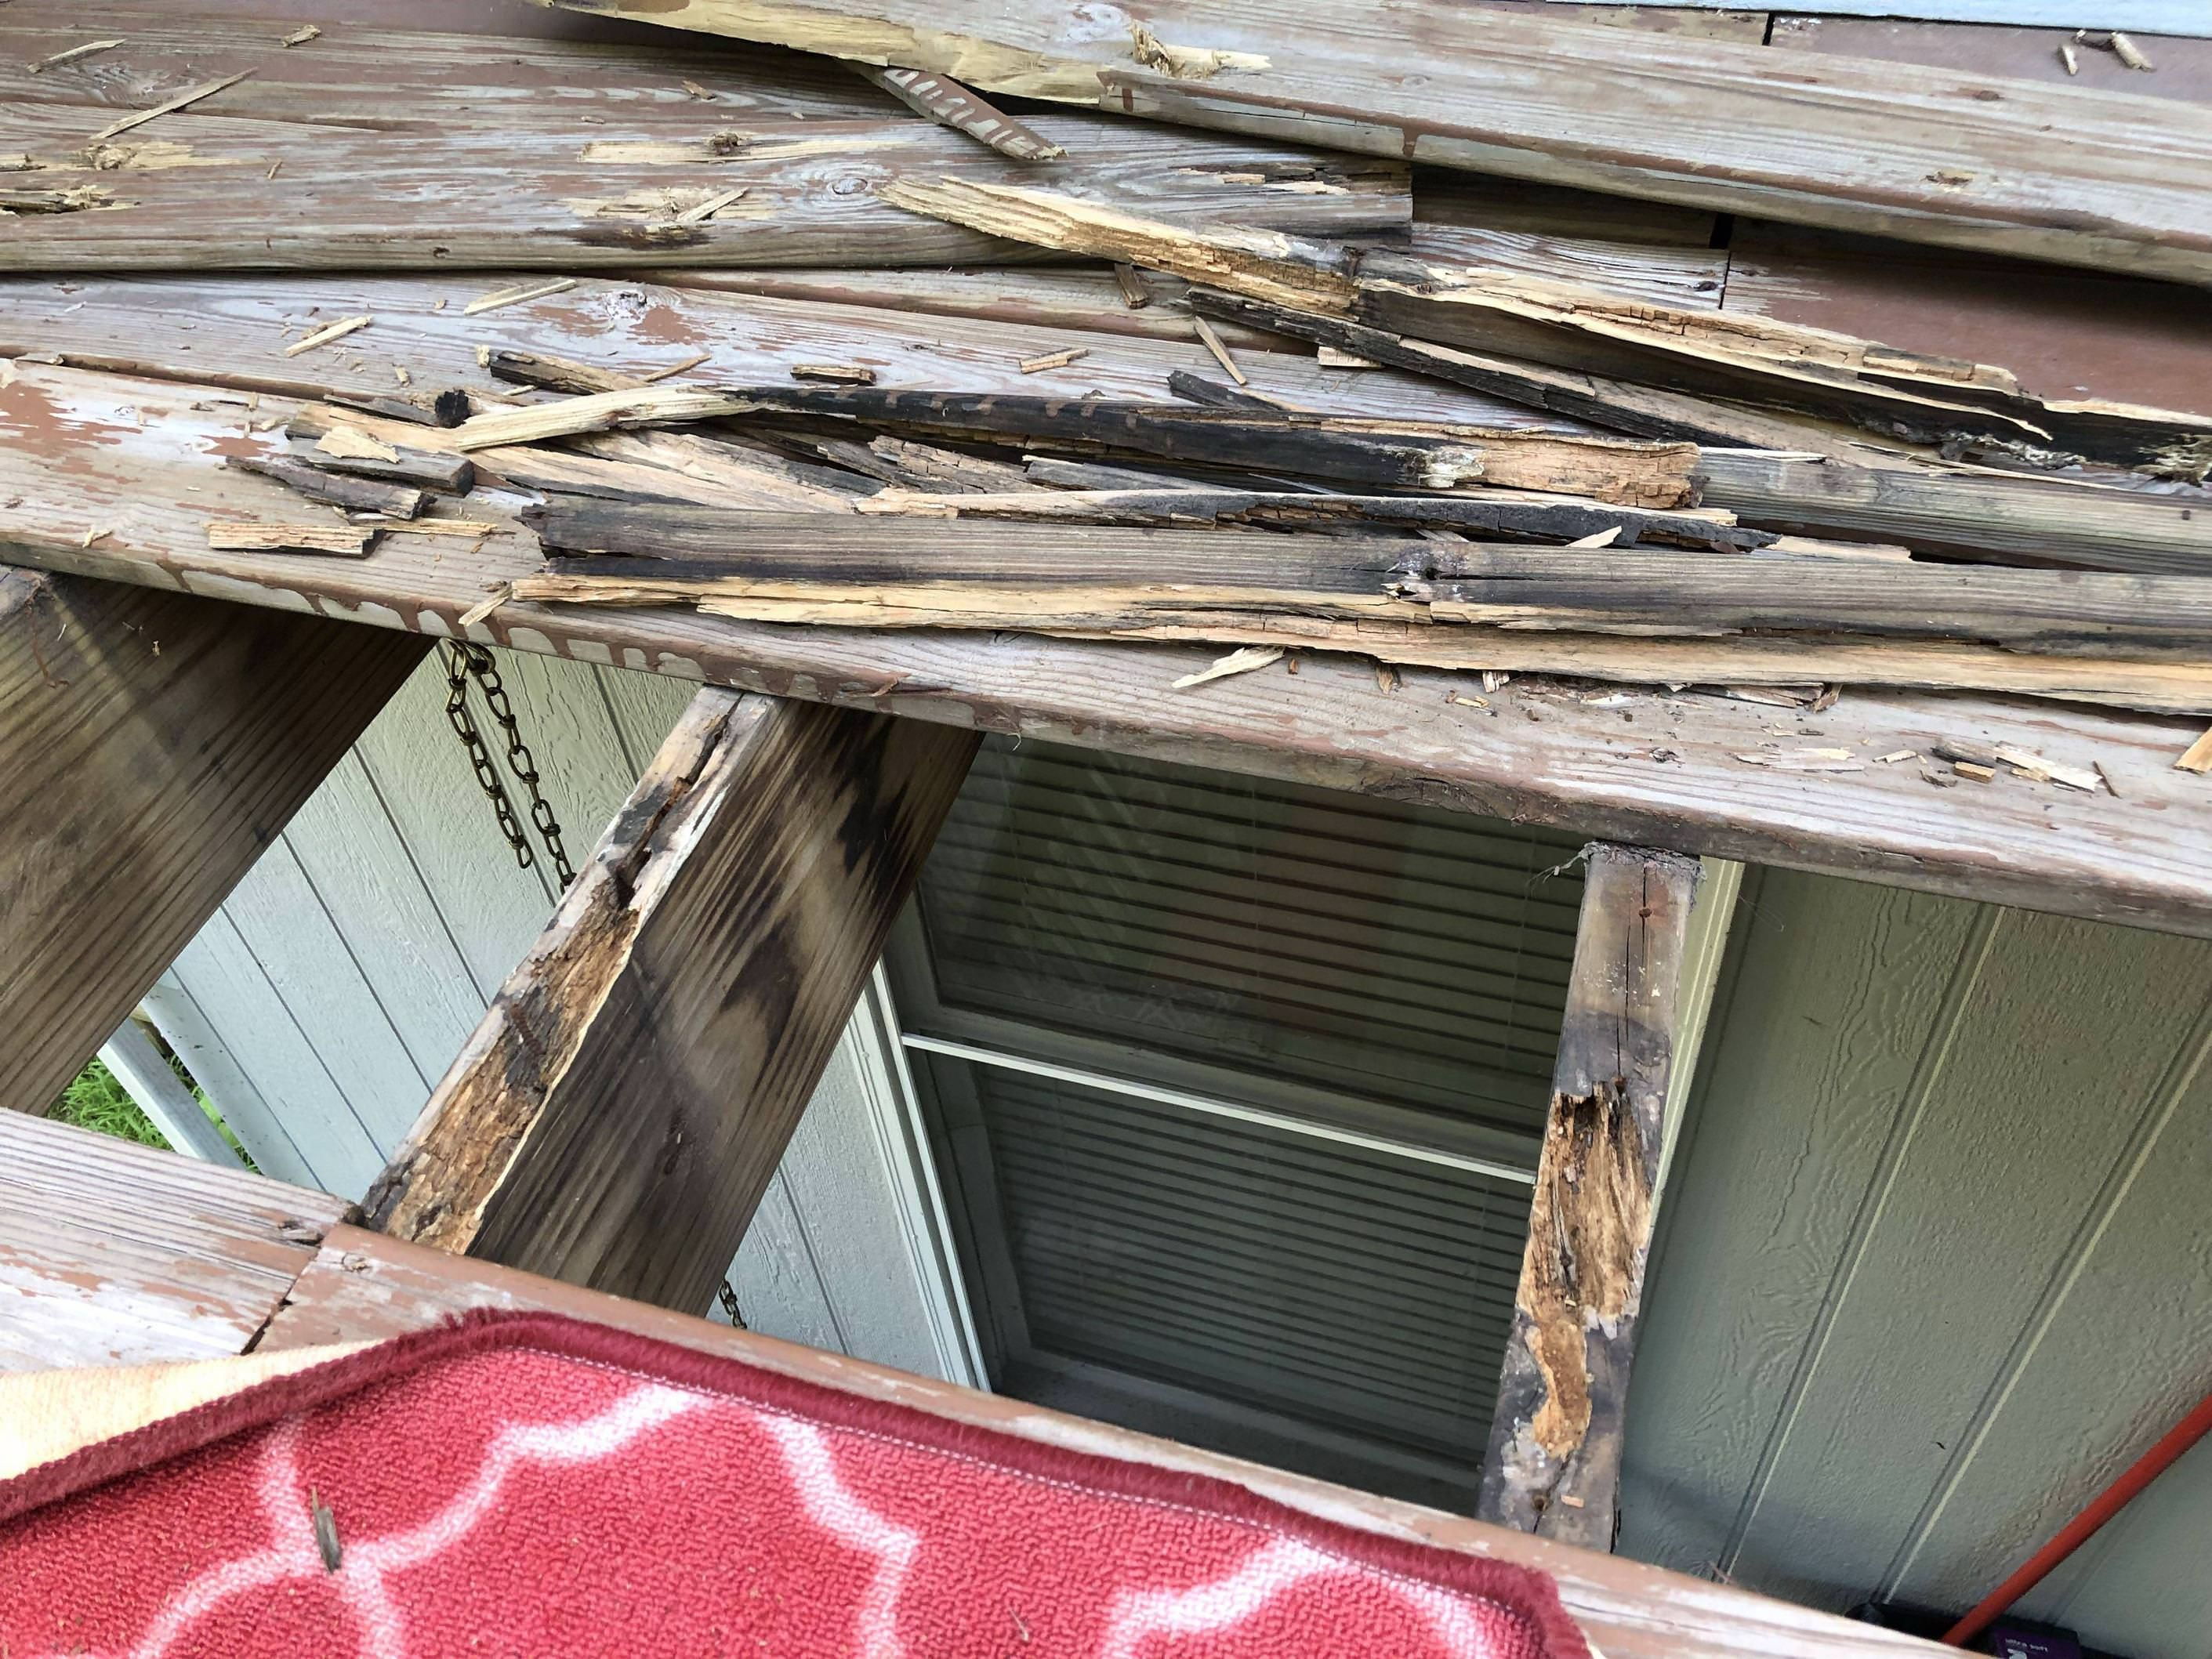 Rotting Floor Joists Do They Need To Be Replaced Or Would Sealing And Coupling To A Sister Joist Do The Trick Handmade Crafts Howto Flooring Diy Projects